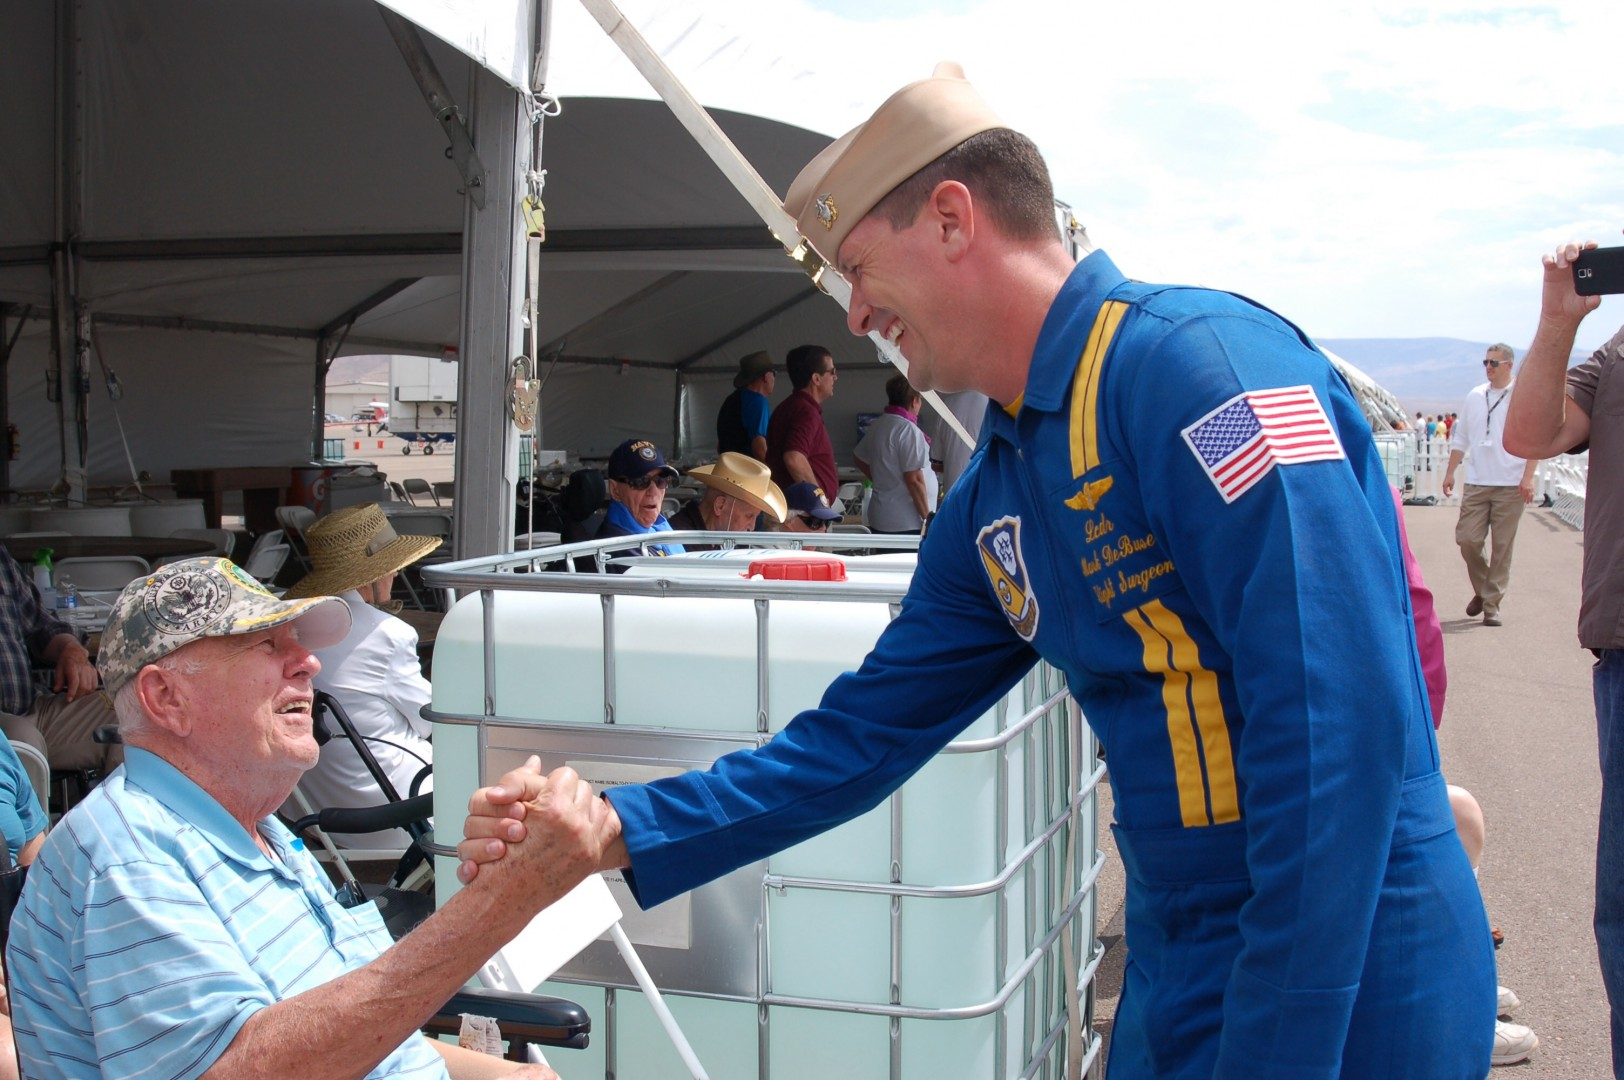 Lt. Cmdr. Mark DeBuse greets veterans from the Southern Utah Veterans Home at a special audience with the Blue Angels, St. George, Utah, July 25, 2014 | Photo by Hollie Reina, St. George News